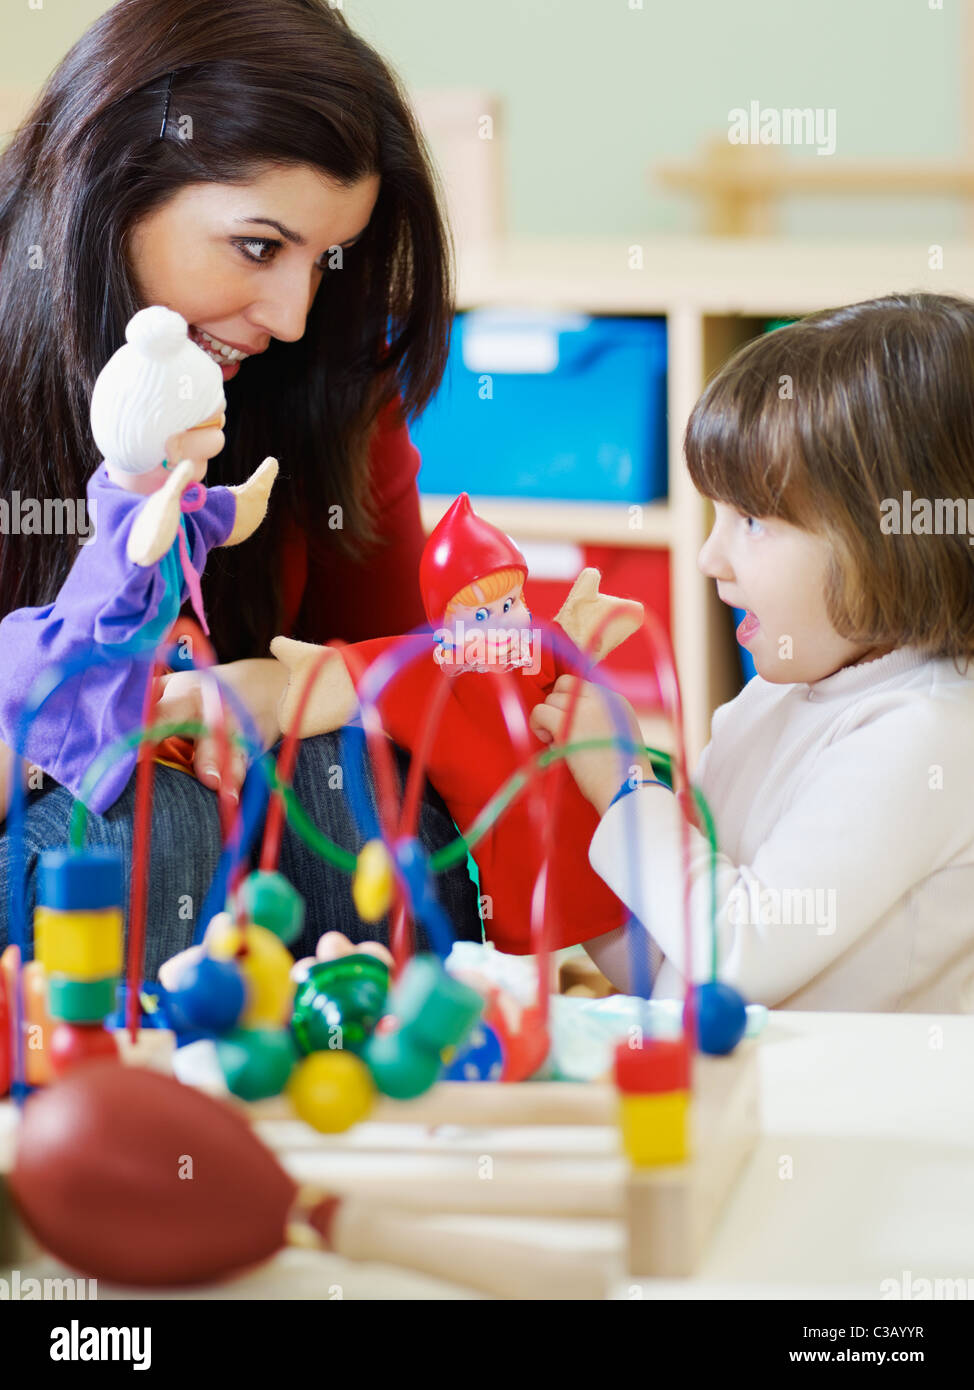 2-3 years girl playing with marionette in kindergarten. Vertical shape - Stock Image